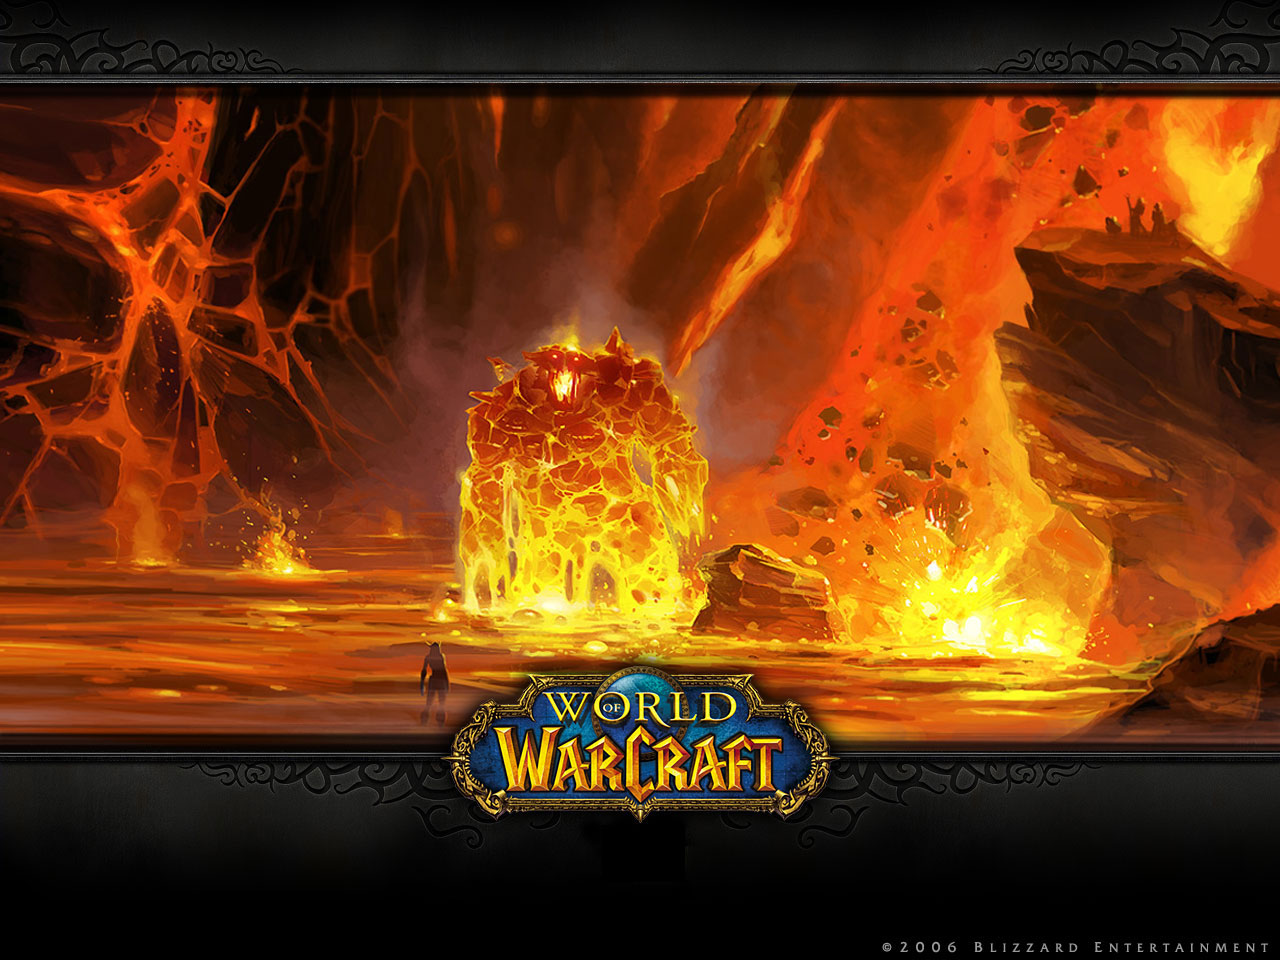 World of Warcraft wallpaper 22